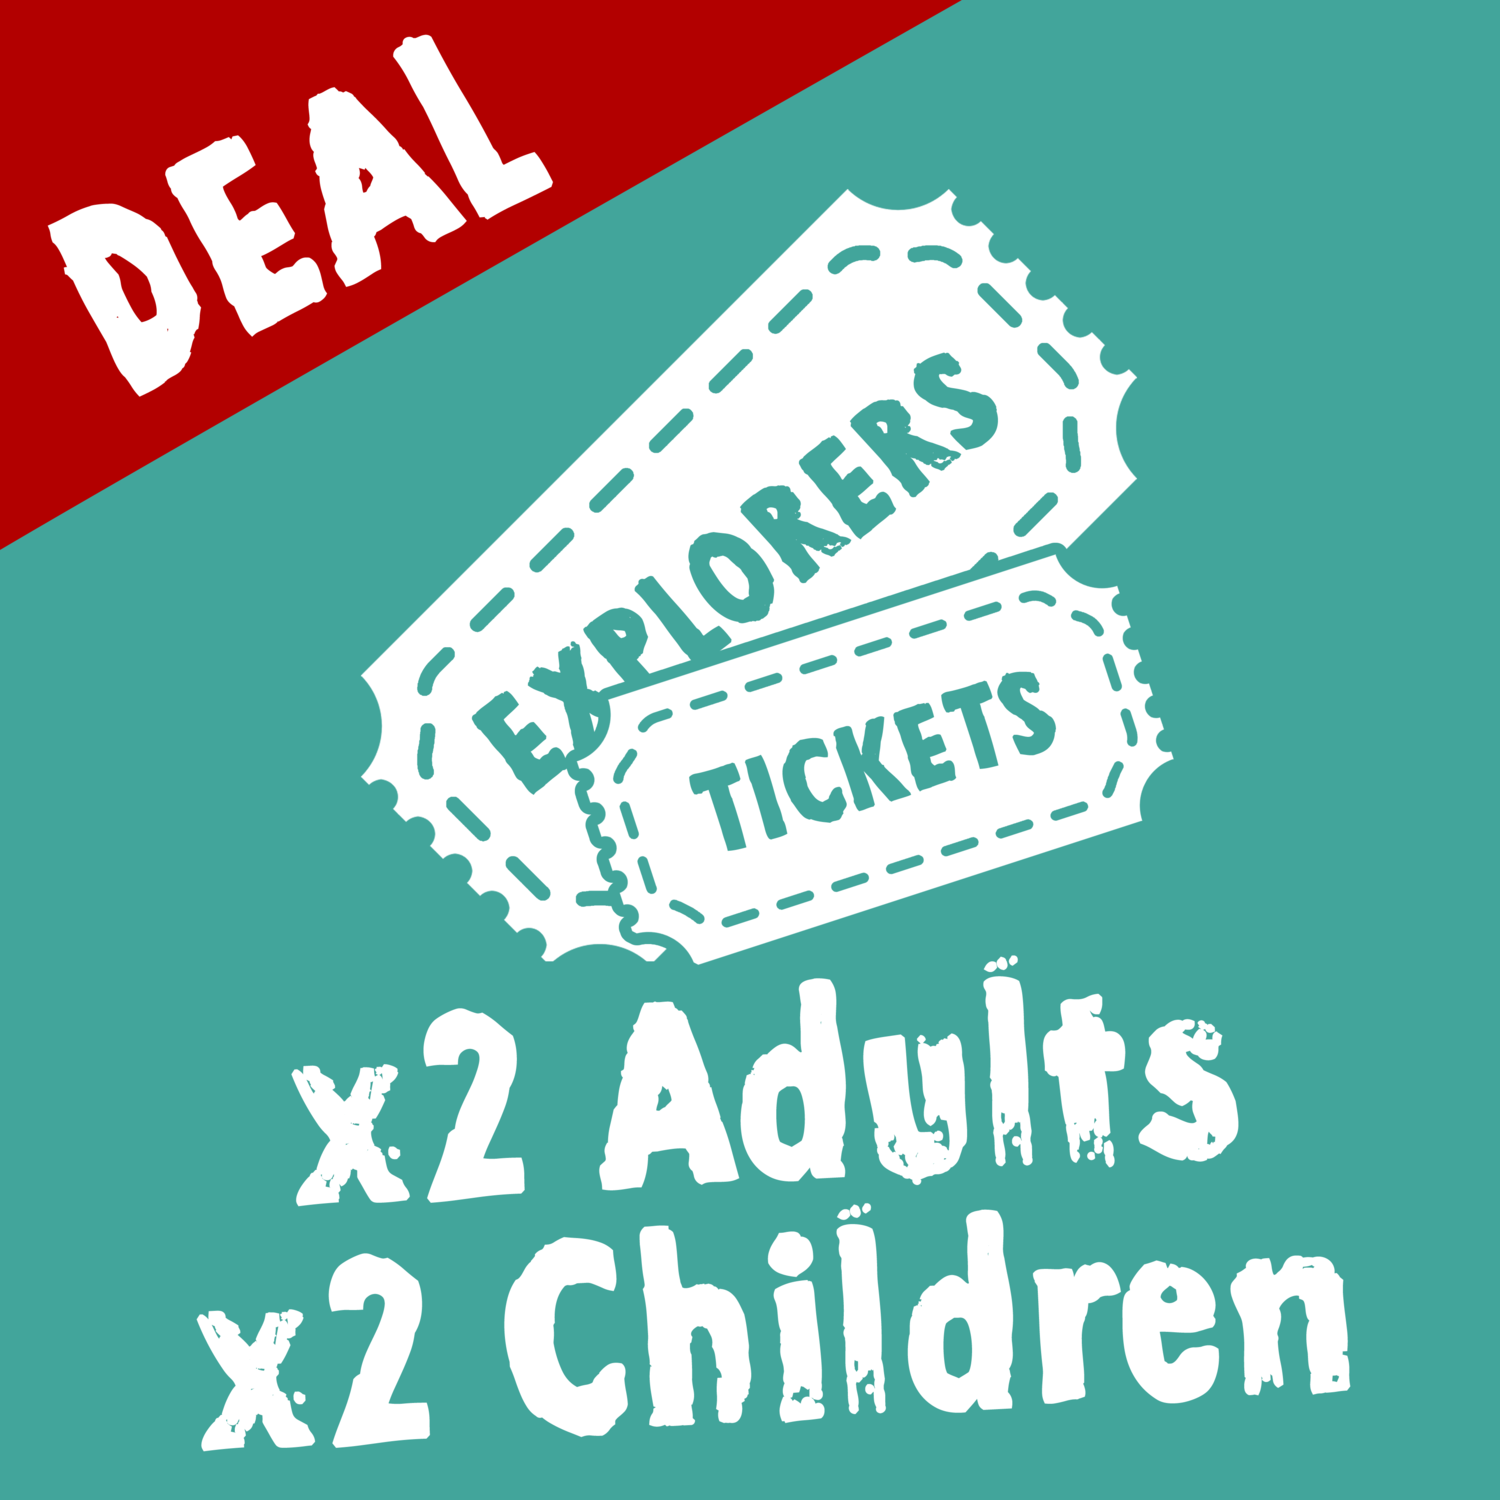 Wild Zoological Park EXPLORERS TICKETS X2 Adult Tickets + X2 Children Tickets ( Single Day Use )